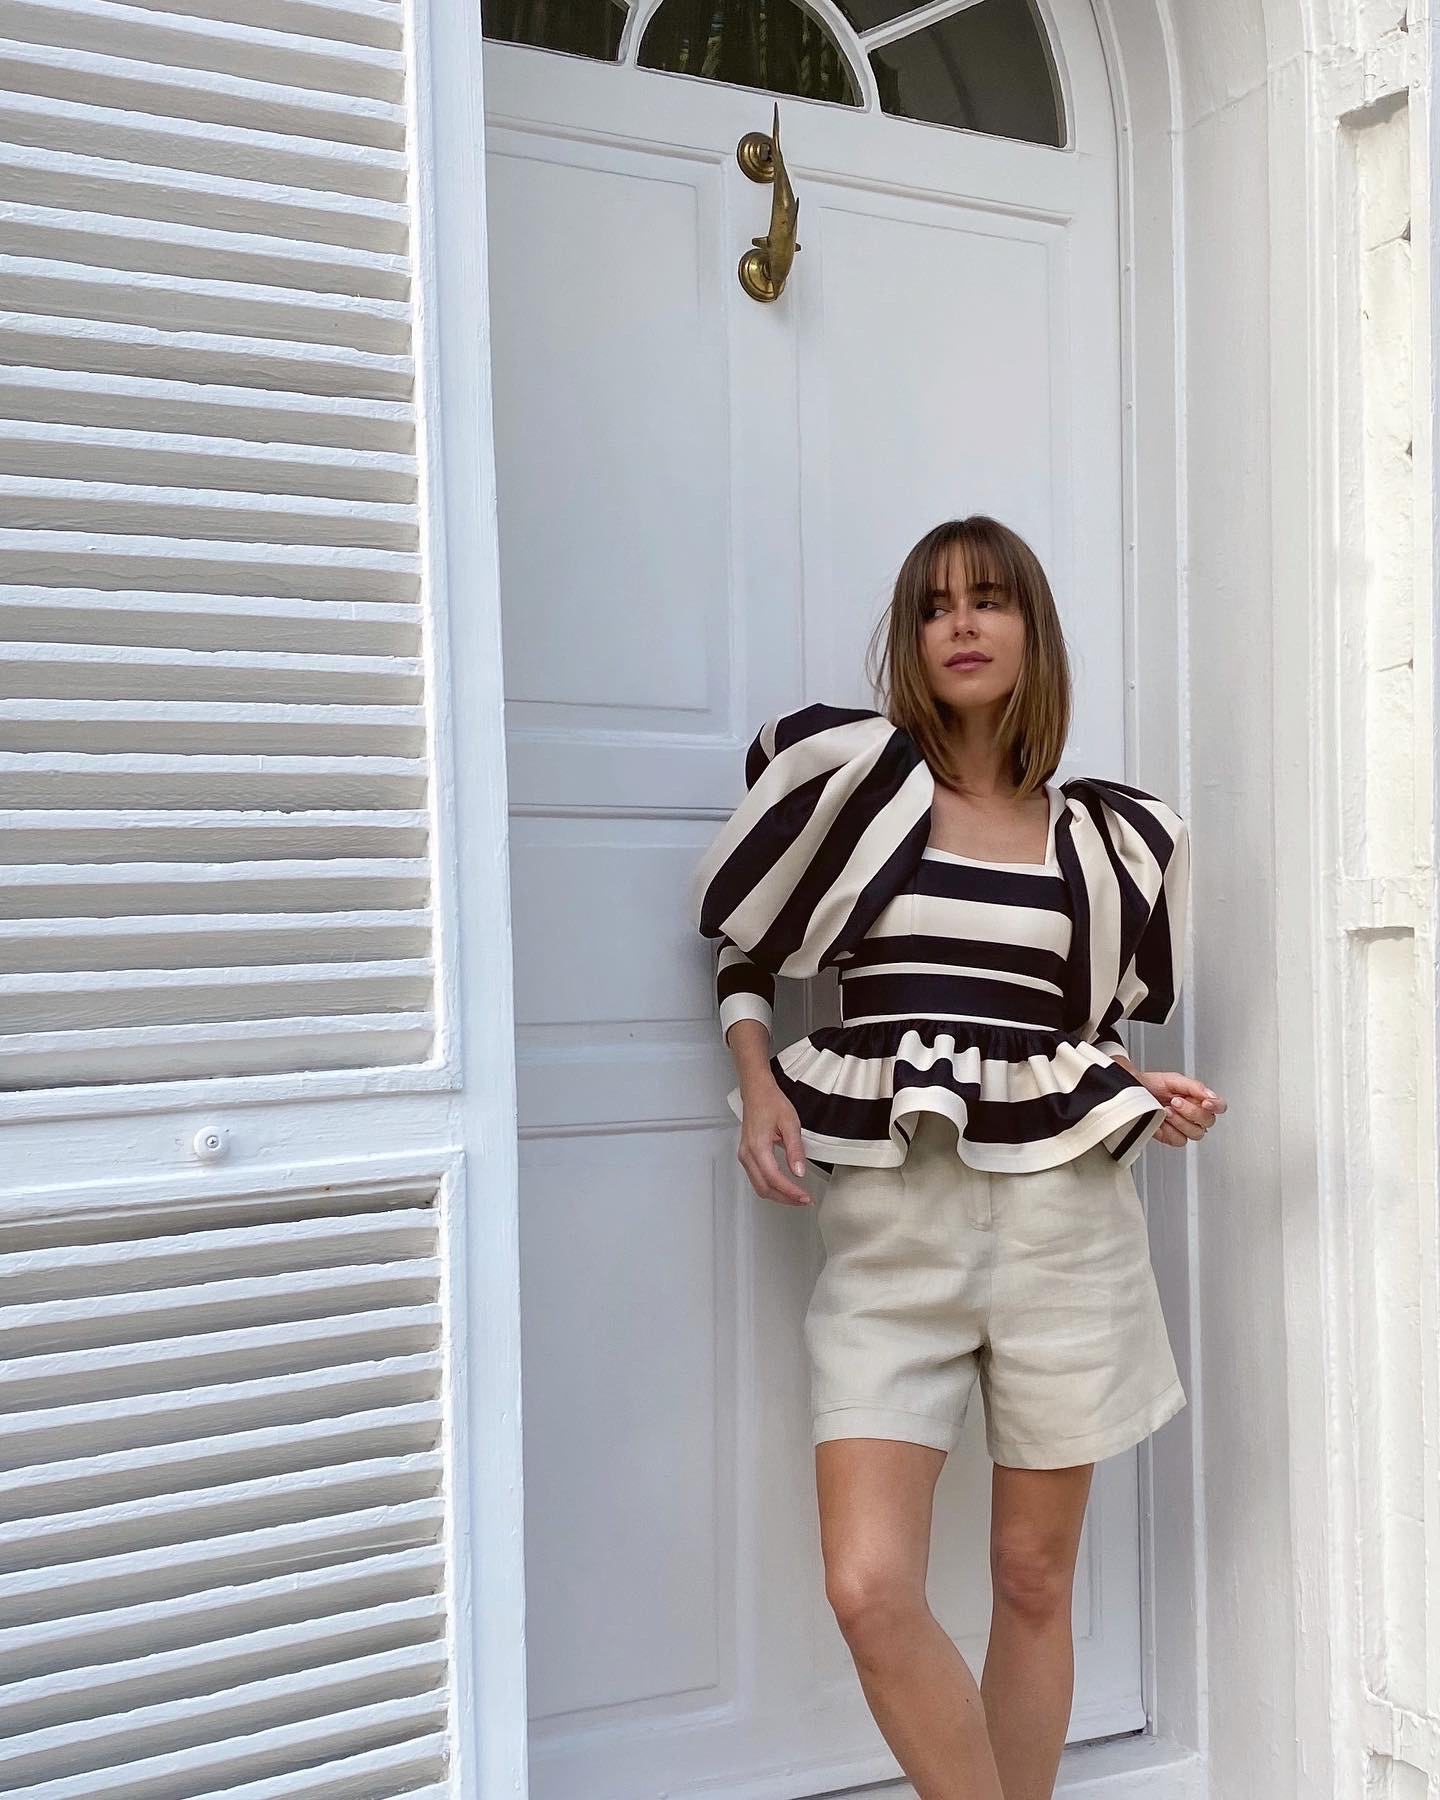 Style Blogger Stephanie Hill wears an #ootd featuring a blouse by Eugenia Fernandez on The Style Bungalow